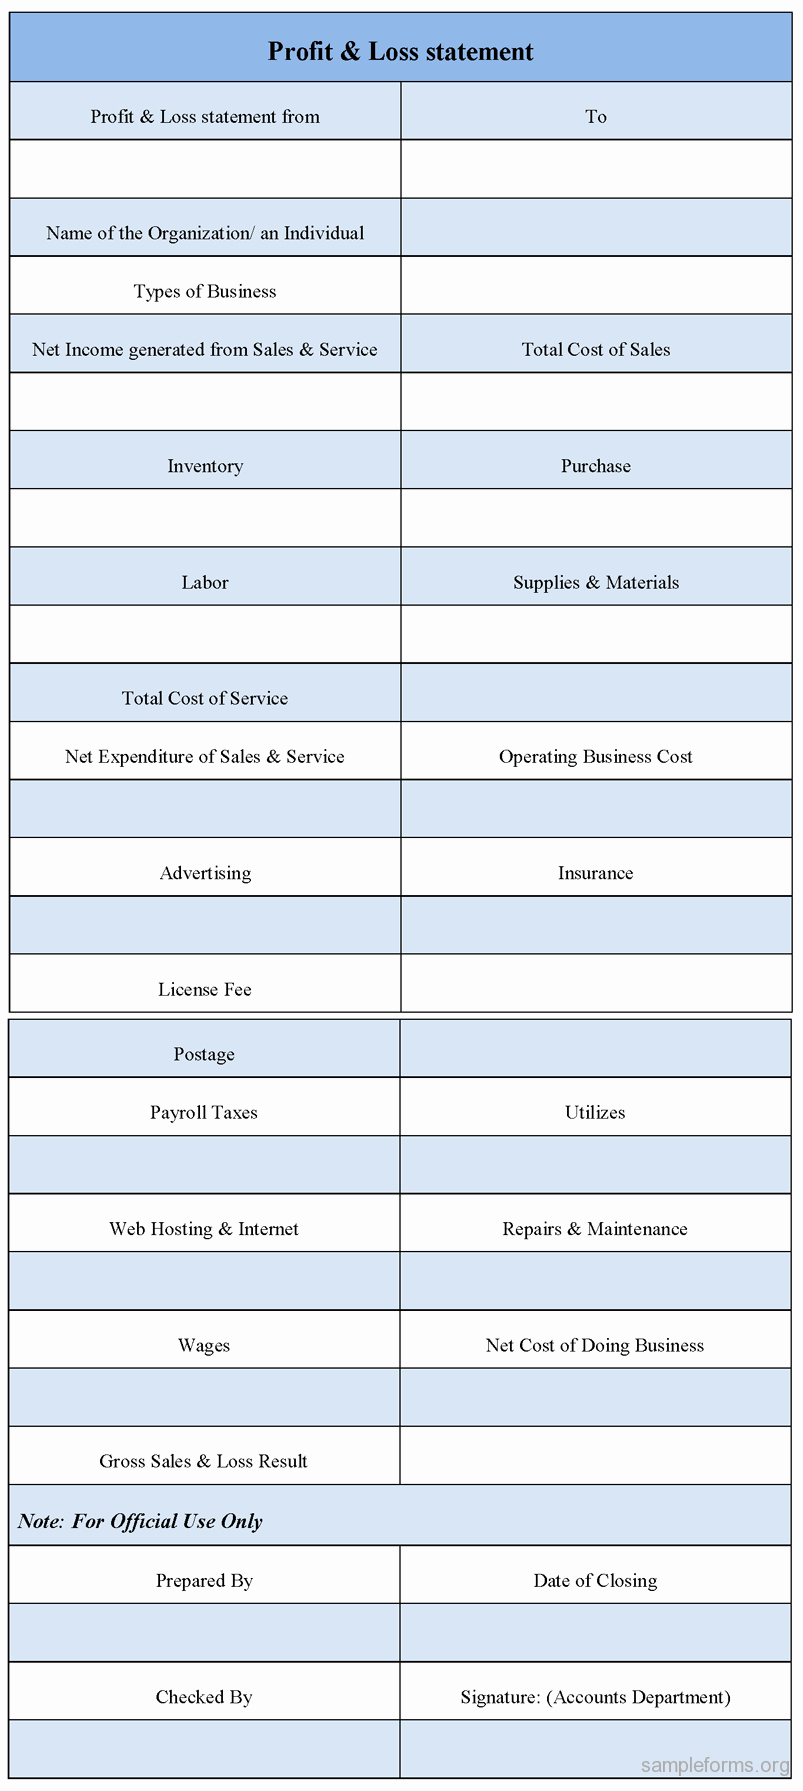 Profit and Loss Statements Examples Luxury Profit and Loss Statement form Sample forms